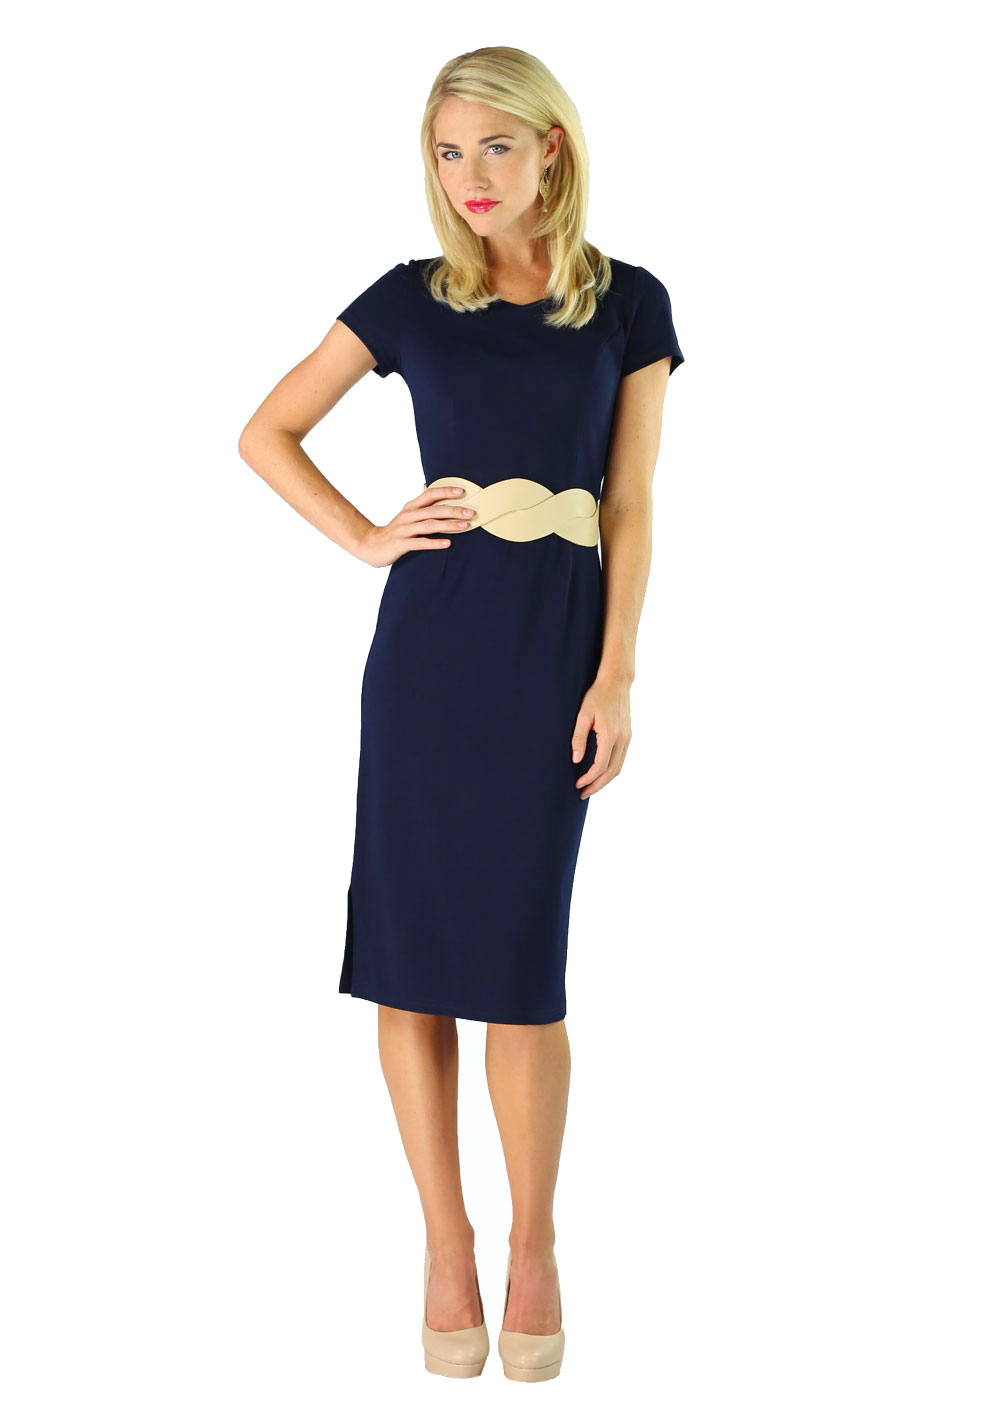 Modest Dresses Sara in Navy Blue